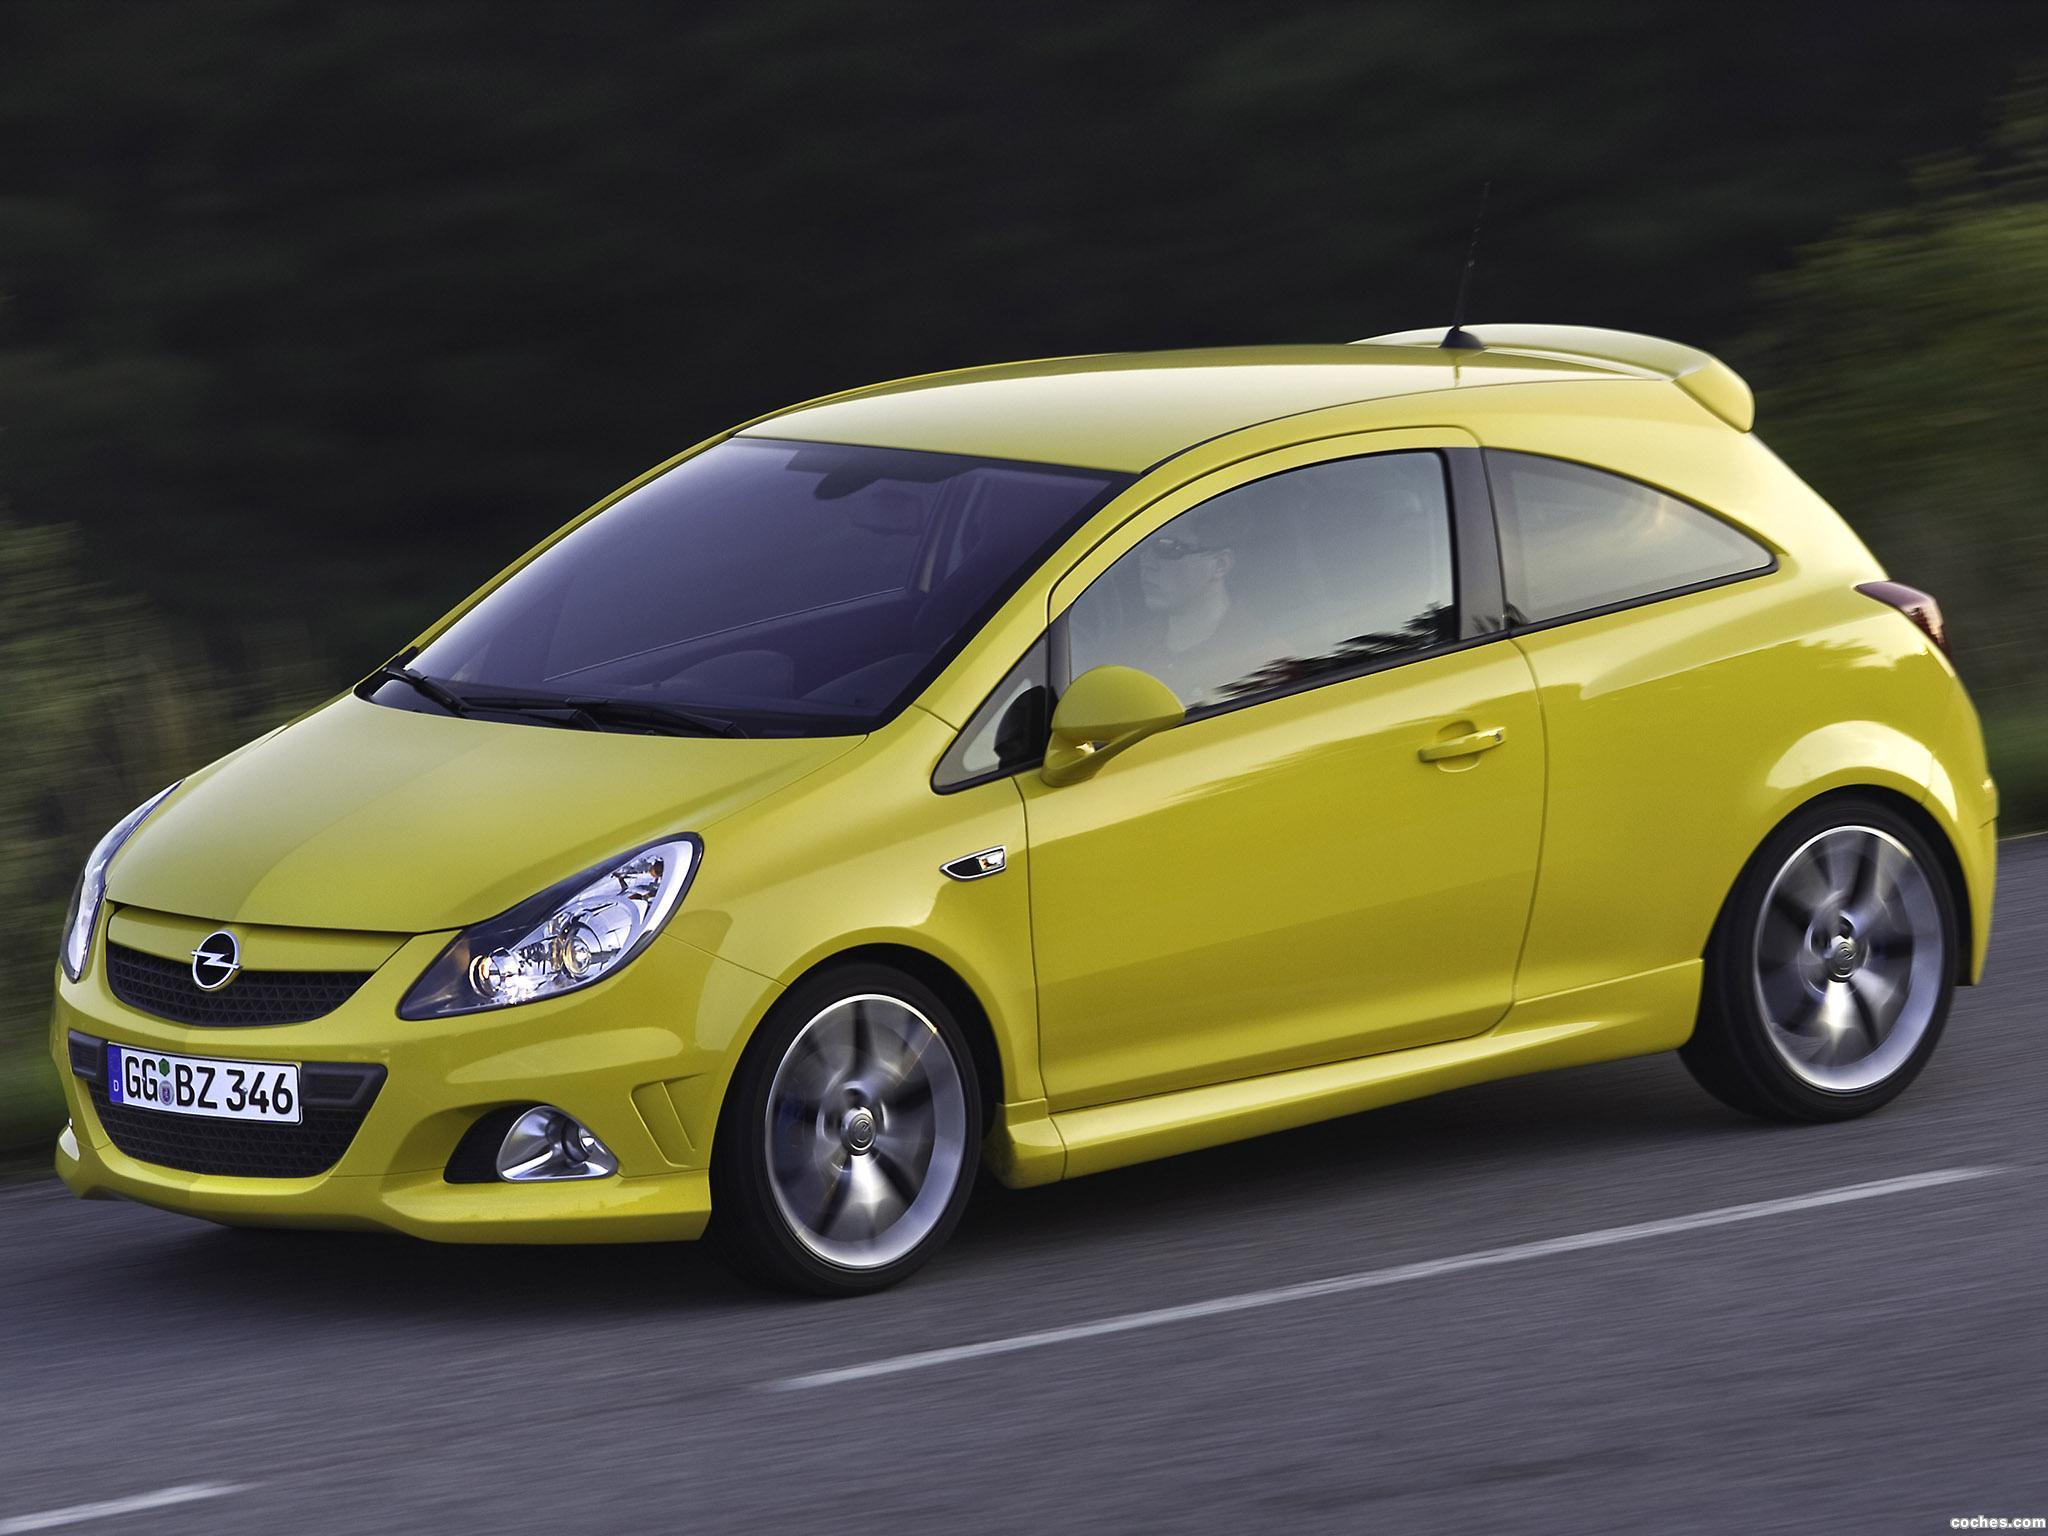 2010 Opel Corsa OPC photo - 1